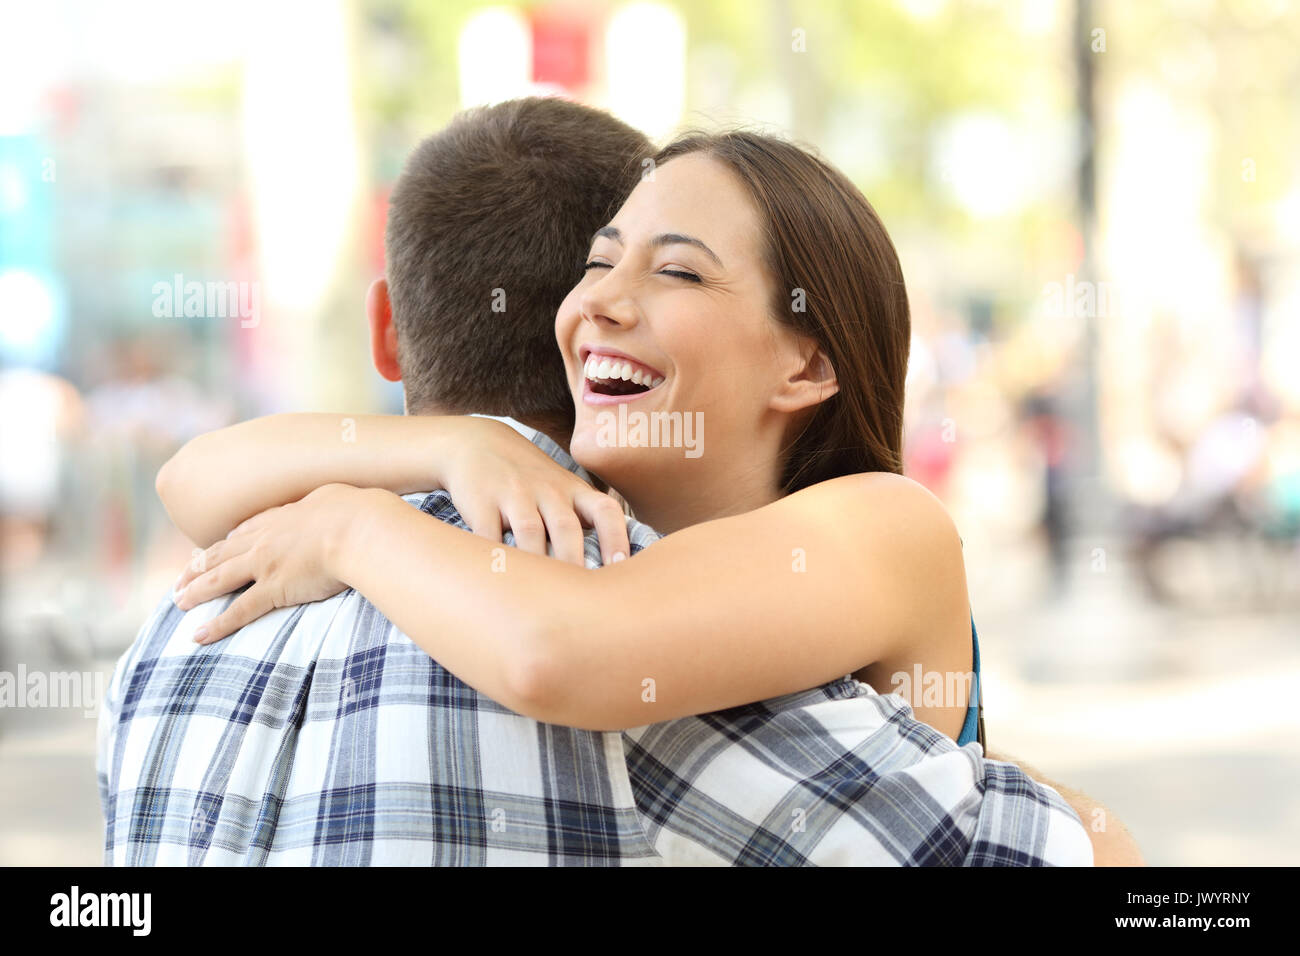 Happy couple or friends hugging after encounter on the street - Stock Image